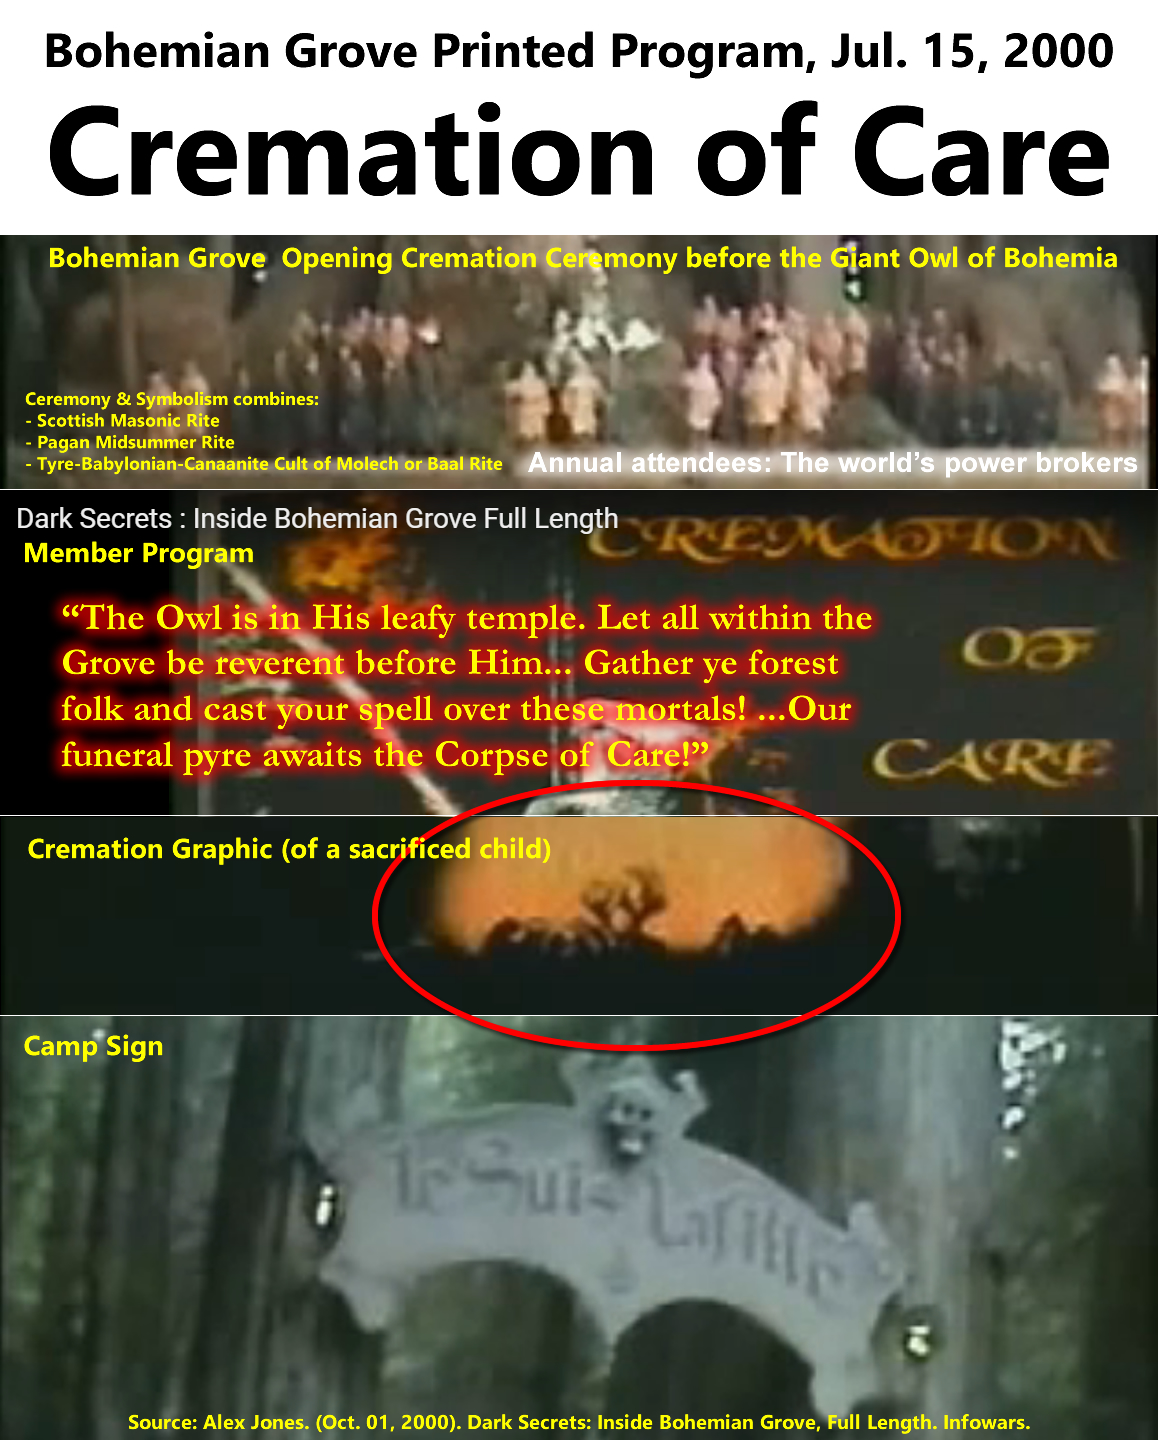 "Bohemian Grove Cremation of Care program, Jul. 15, 2000 - Bohemian Grove Printed Program, Jul. 15, 2000 Cremation of Care. Annual attendees: The world's power brokers. Bohemian Grove  Opening Cremation Ceremony before the Giant Owl of Bohemia. Ceremony & Symbolism combines: - Scottish Masonic Rite - Pagan Midsummer Rite - Tyre-Babylonian-Canaanite Cult of Molech or Baal Rite. Member Program. ""The Owl is in His leafy temple. Let all within the Grove be reverent before Him... Gather ye forest folk and cast your spell over these mortals! ...Our funeral pyre awaits the Corpse of Care!"" Cremation Graphic (of a sacrificed child). Camp Sign."